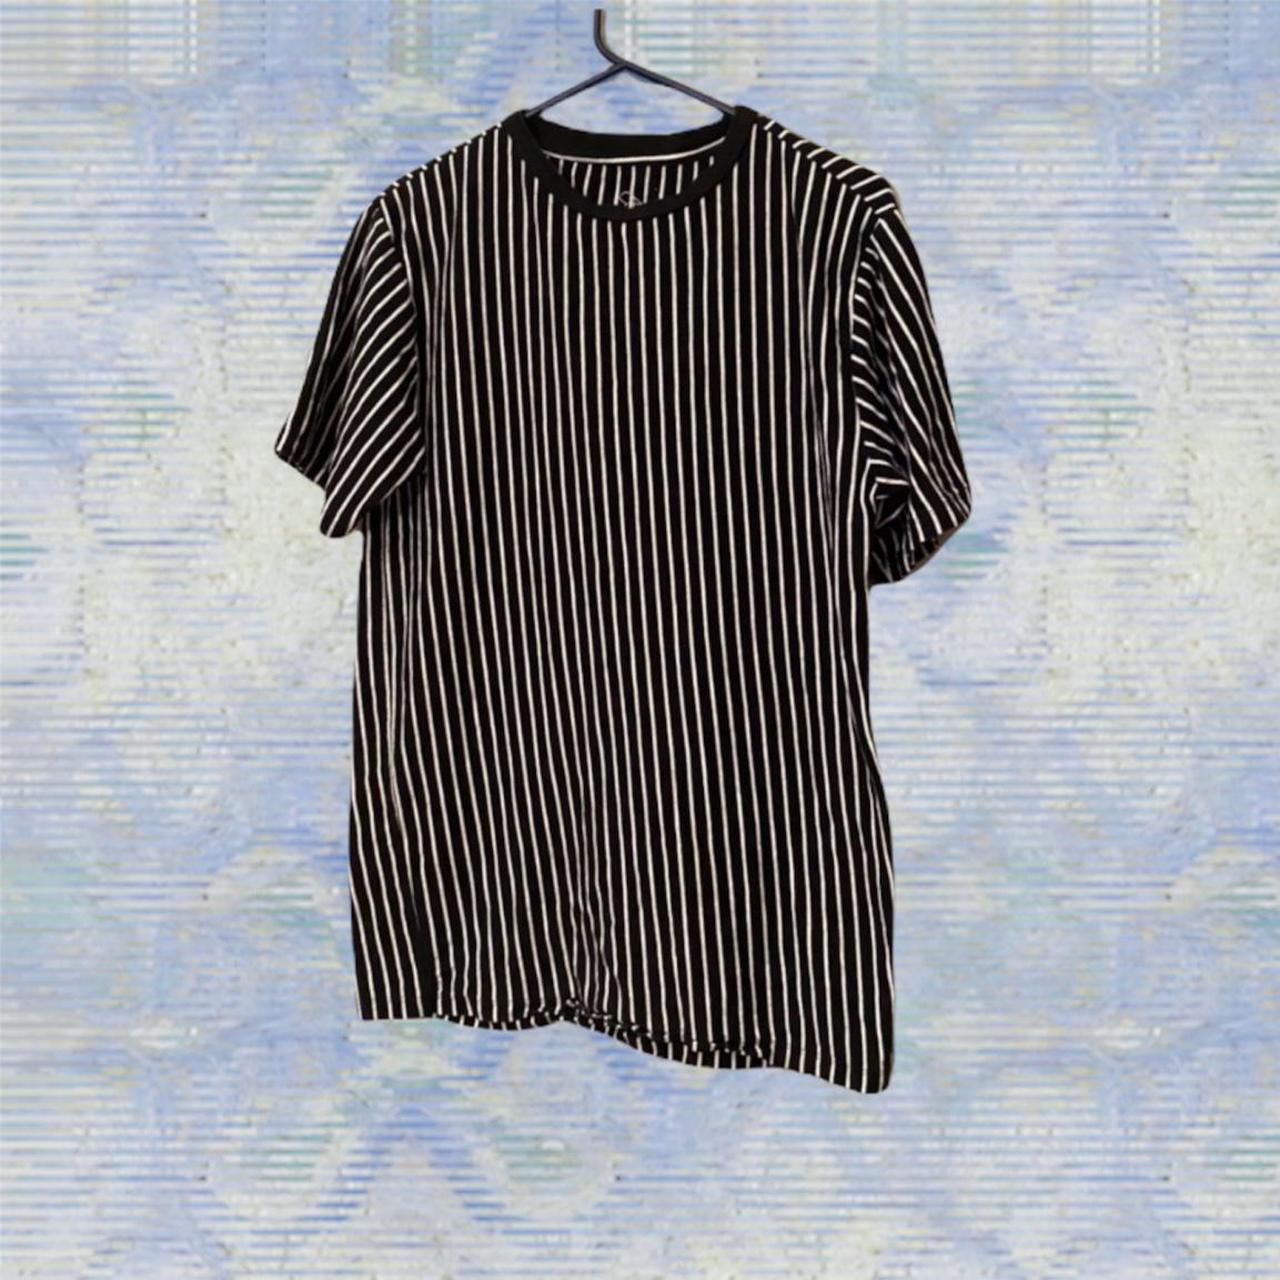 Product Image 1 - Vertical striped tee ✨ Unisex